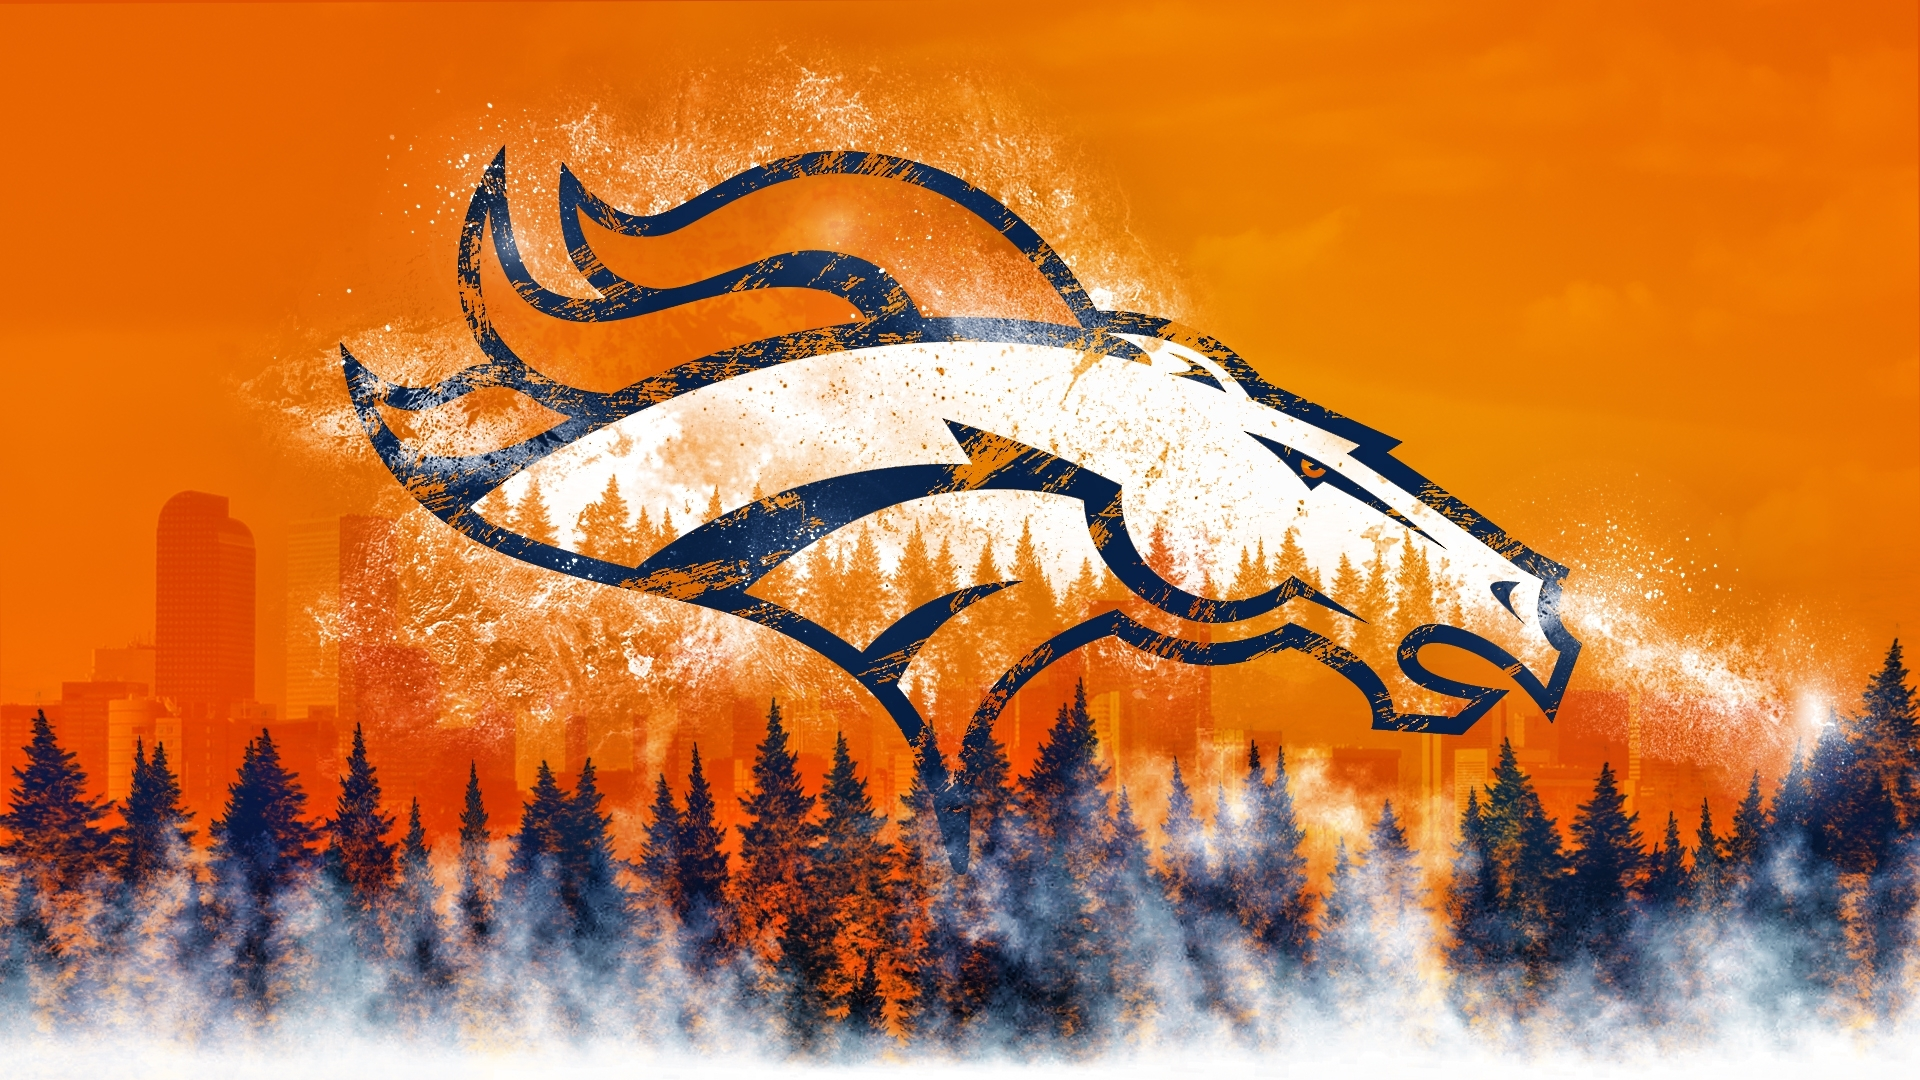 10 Best Denver Broncos Desktop Background FULL HD 1920×1080 For PC Background